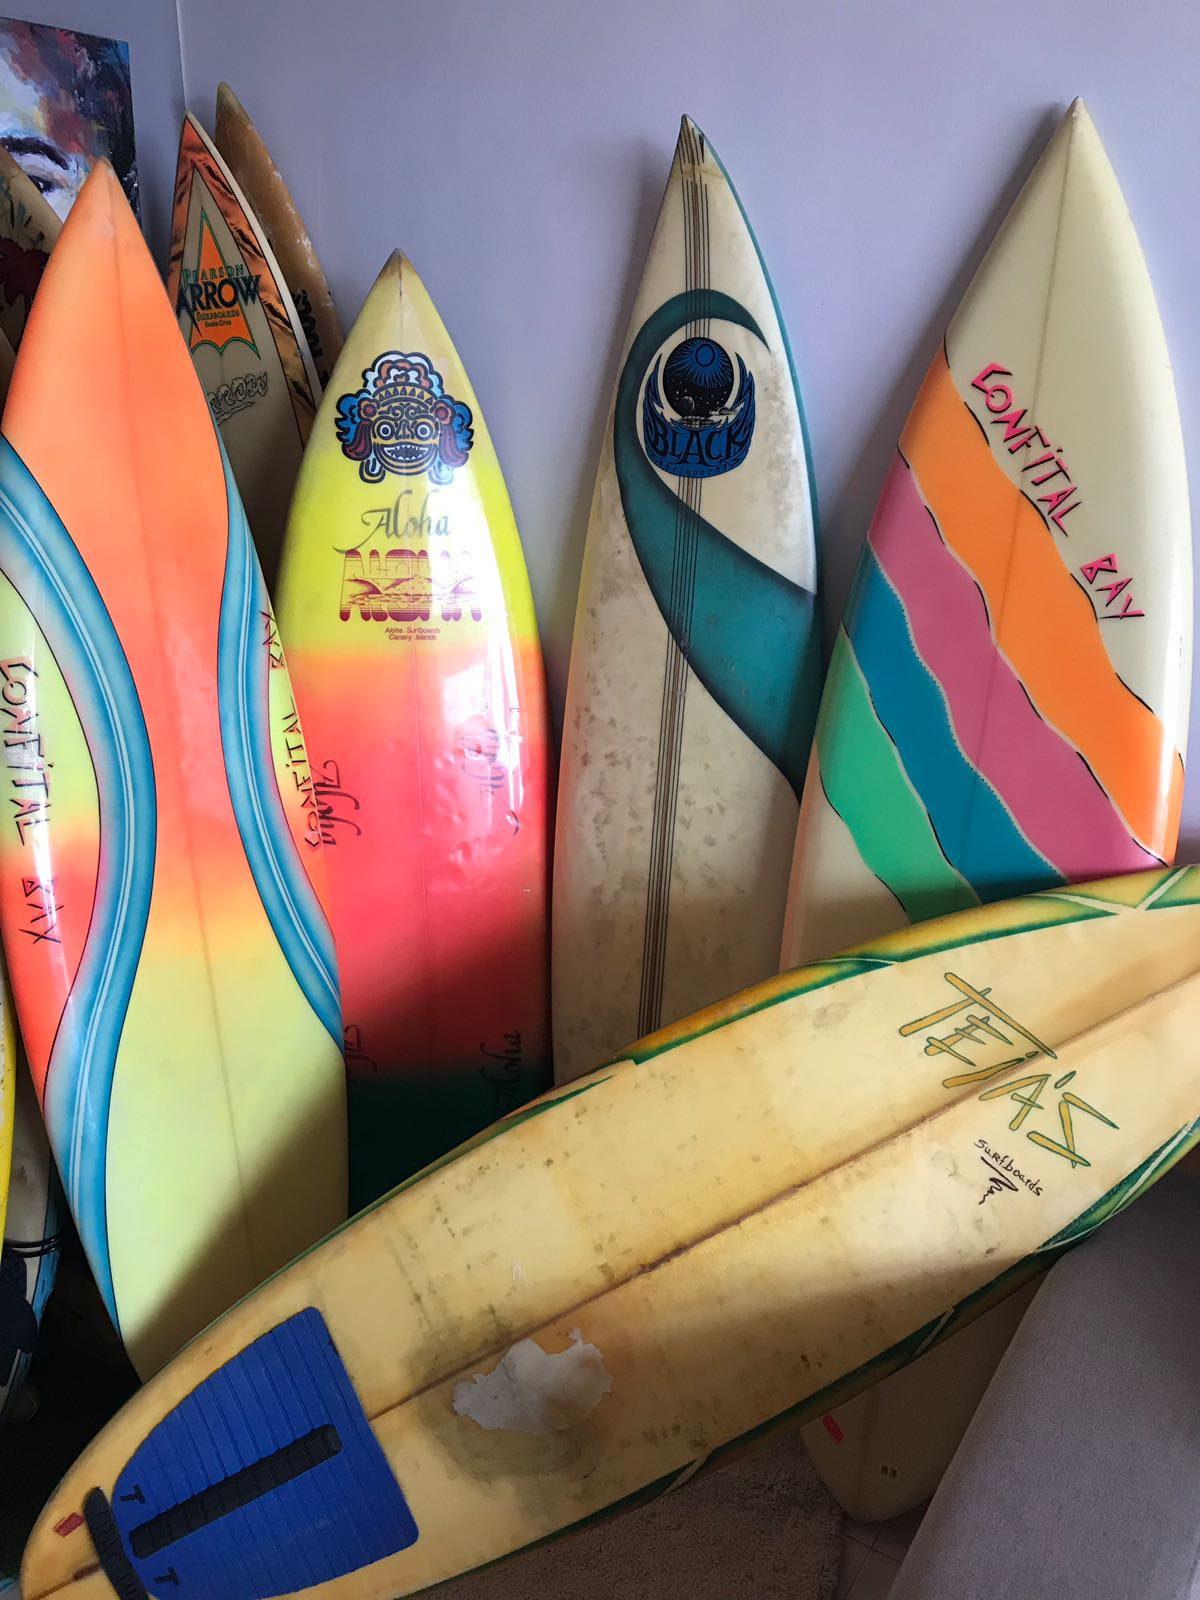 Canarian vintage surfboards